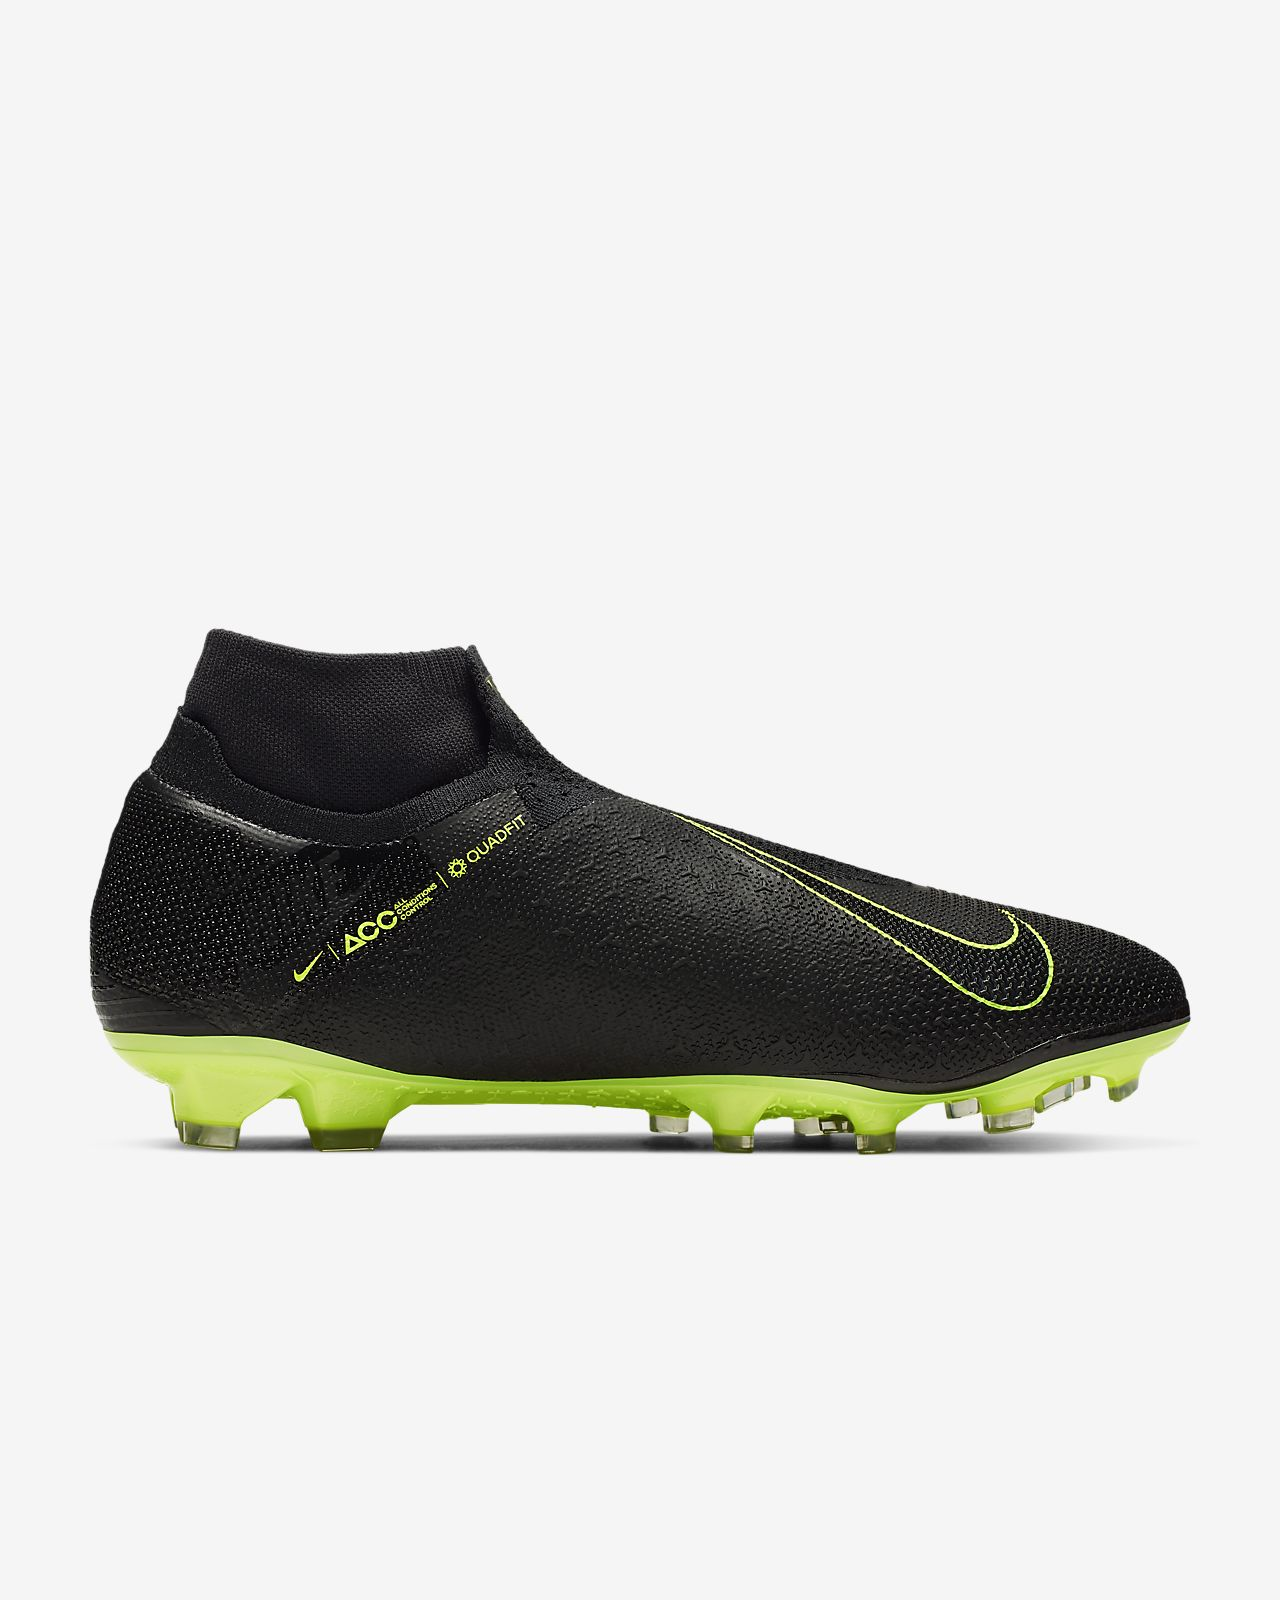 cc9eb260e ... Nike Phantom Vision Elite Dynamic Fit FG Firm-Ground Soccer Cleat